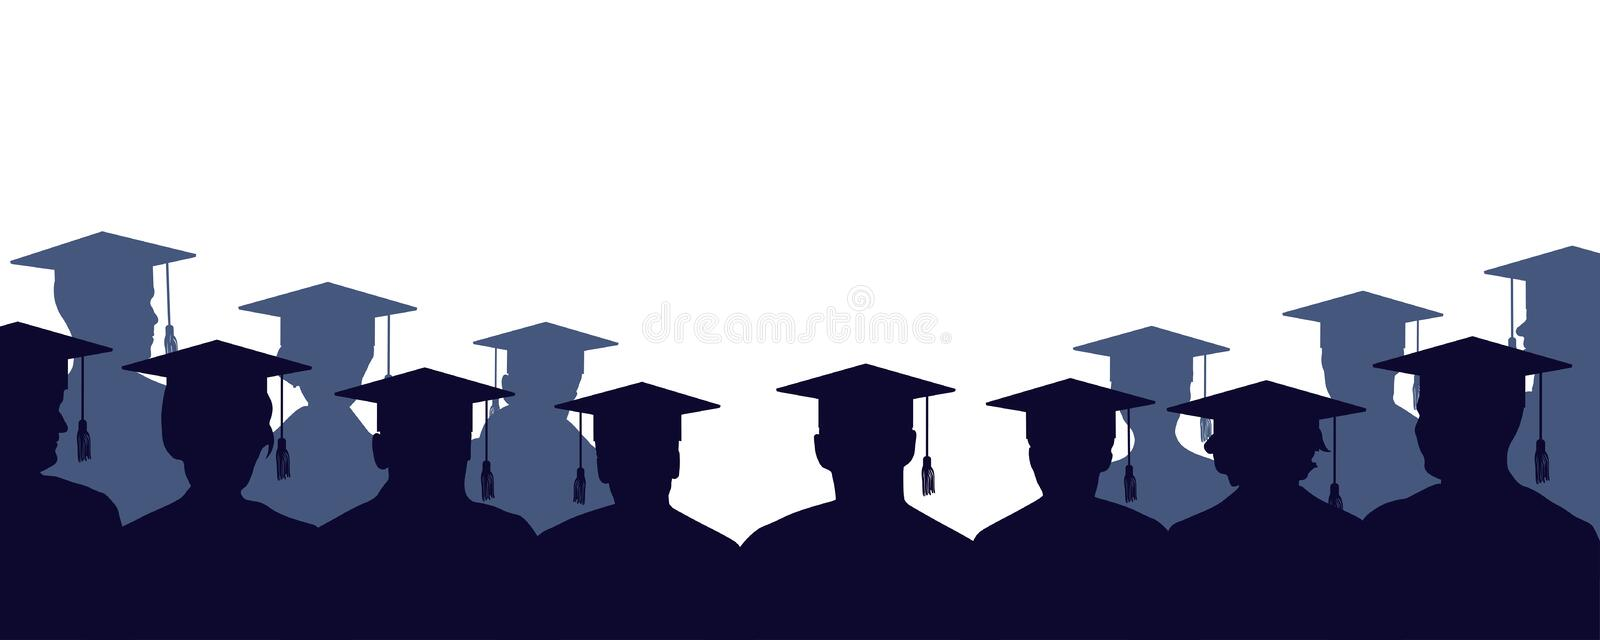 Group of university graduates. Crowd of people of students, in mantles stock illustration